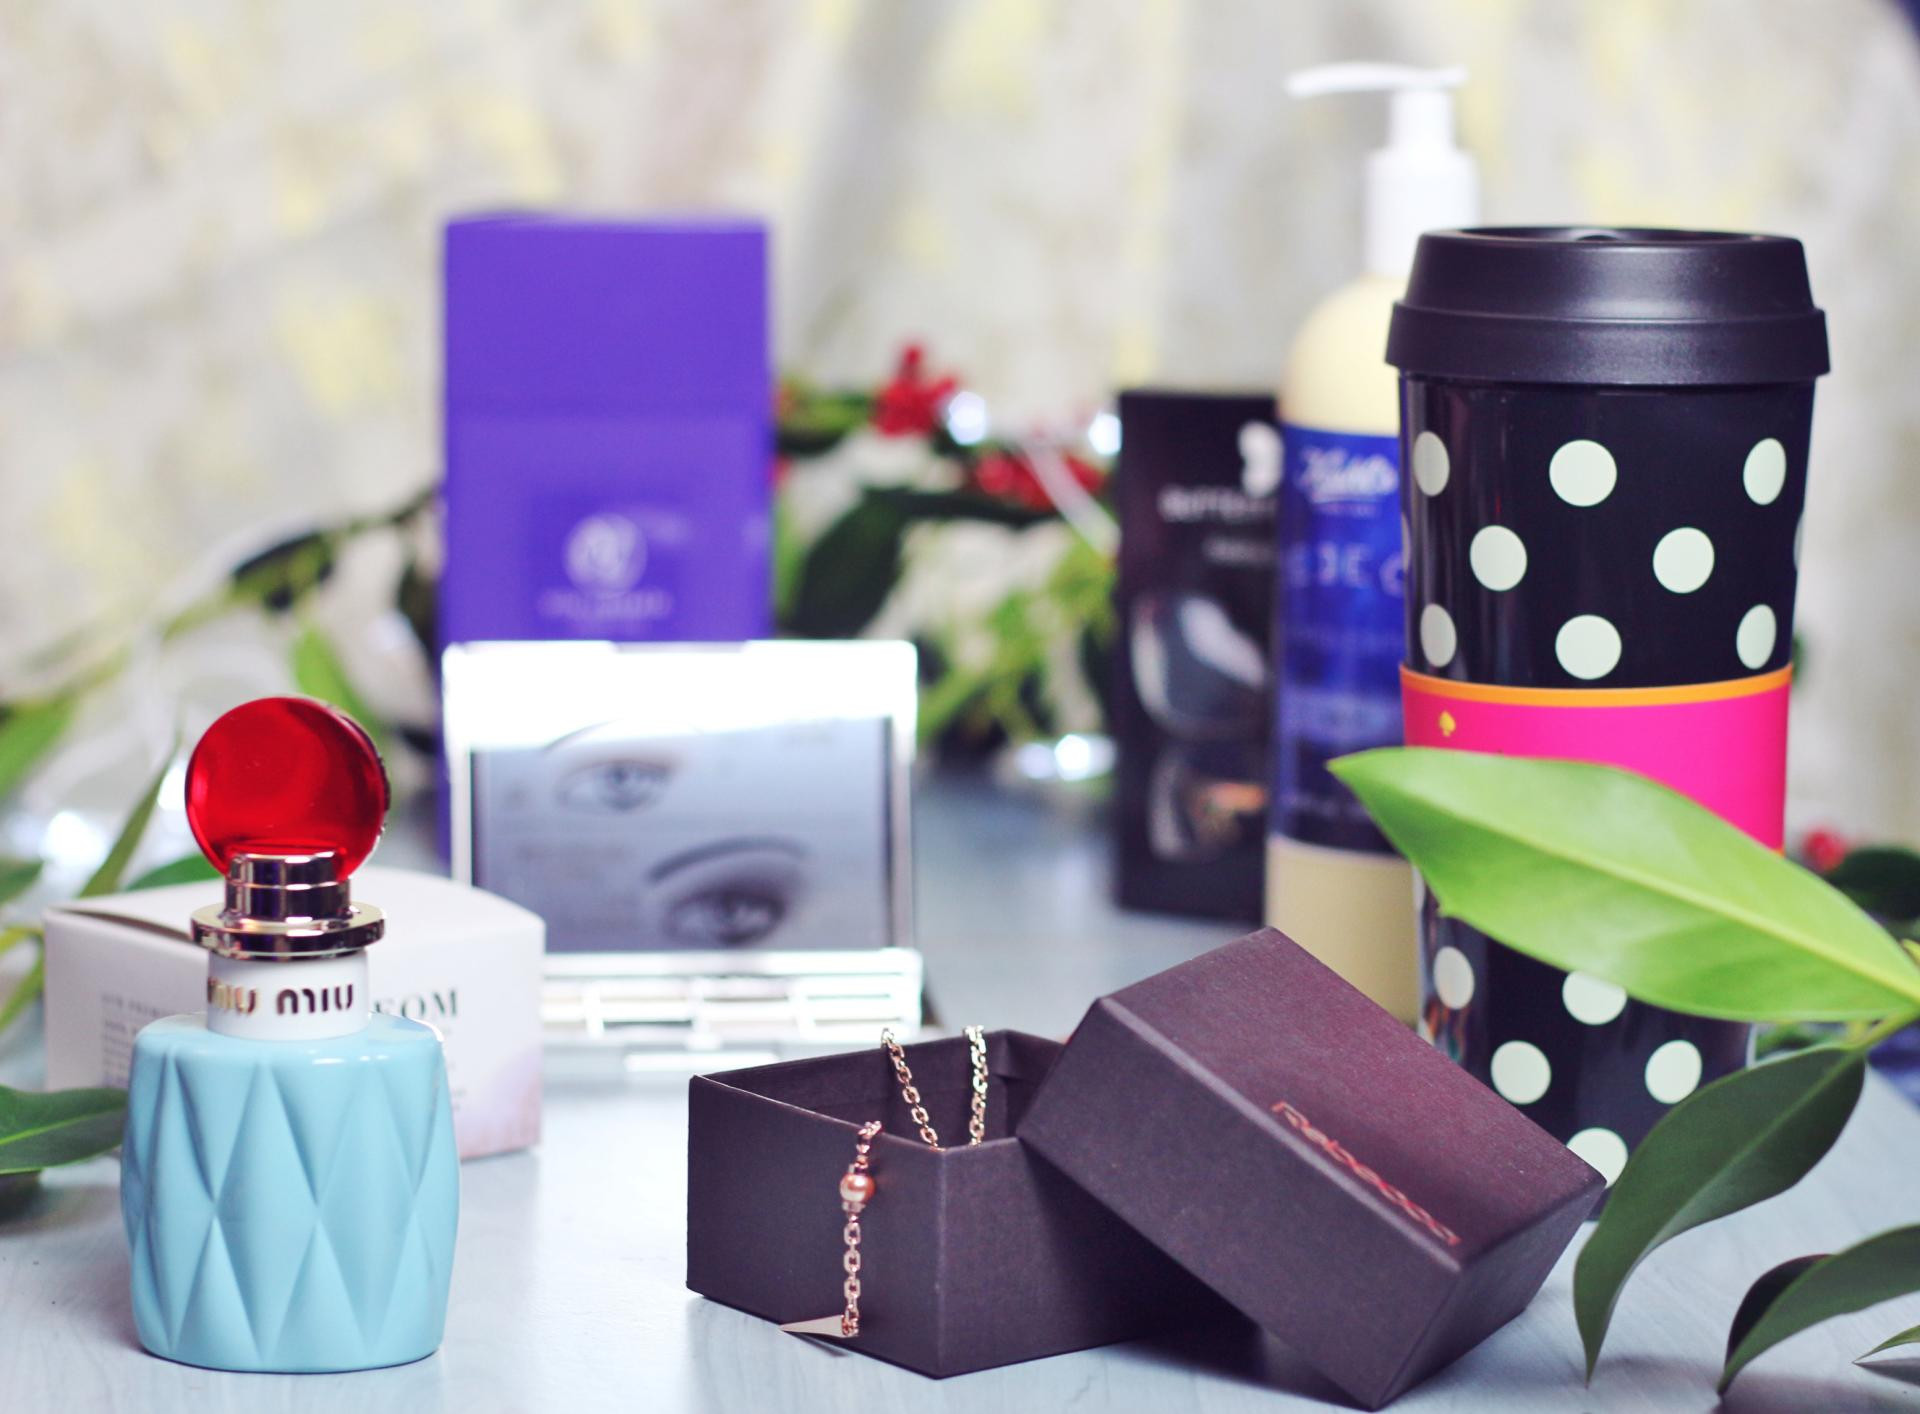 Best ideas about Luxury Birthday Gifts For Her . Save or Pin Luxury Gift Ideas for Her Now.